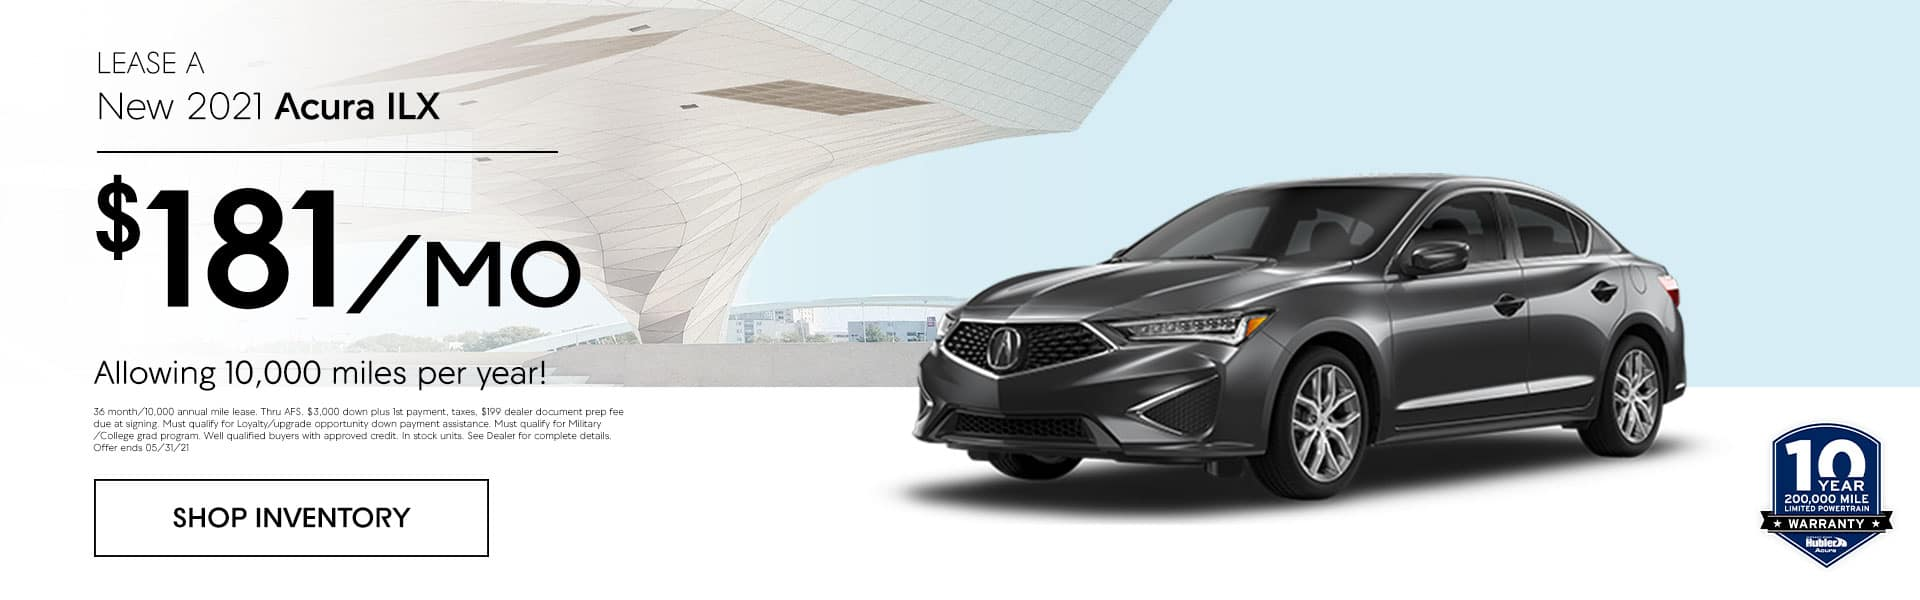 2020 Acura ILX Lease for just $179.00 per month for 36 months allowing 10,000 miles per year!